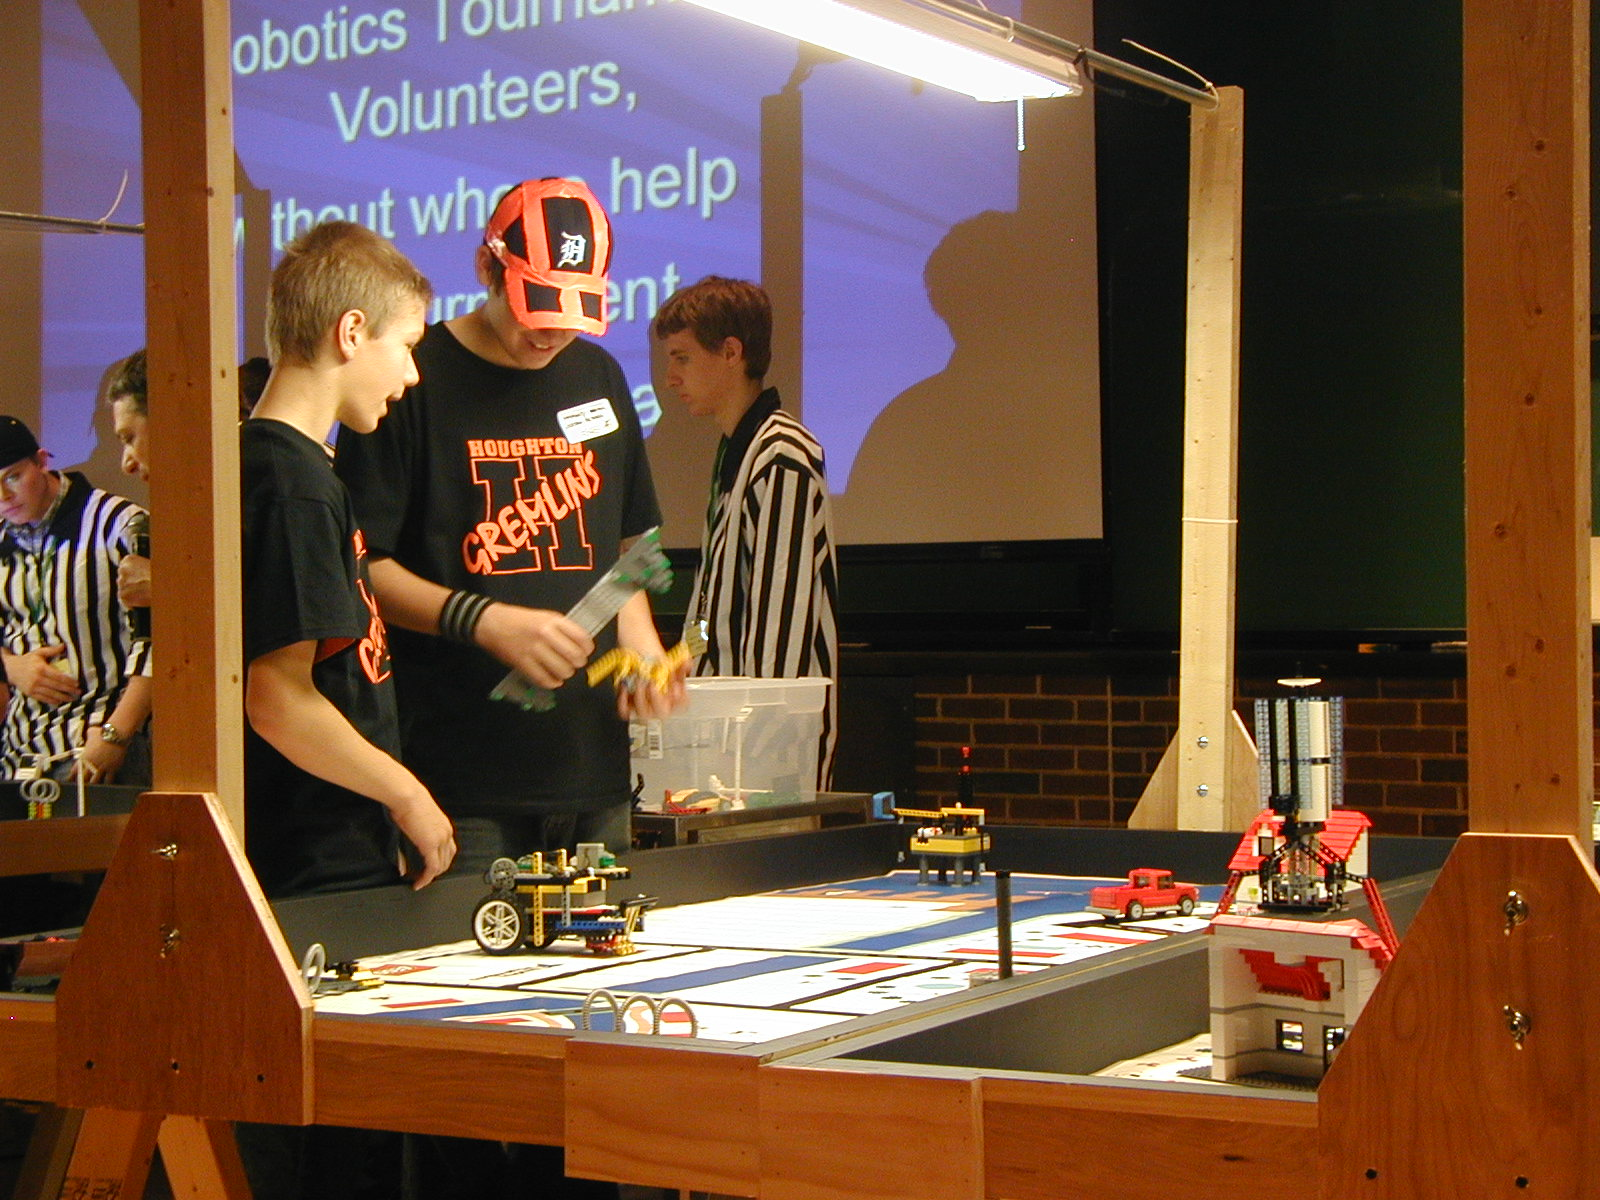 Adventures In Robotics - Local Children Learn By Using Robots At PSU